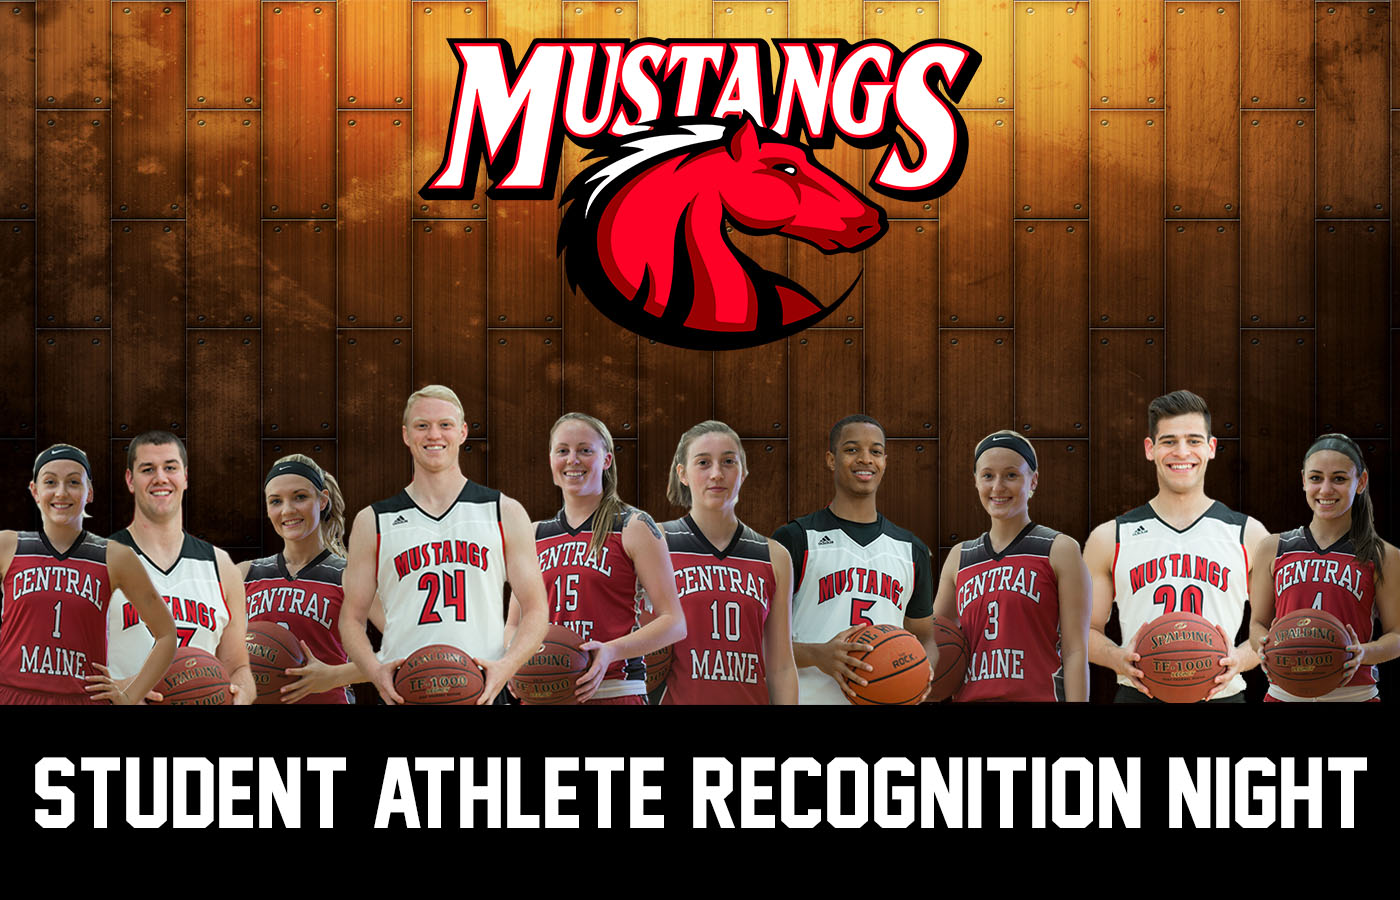 Student-Athlete Recognition Night Scheduled for Monday